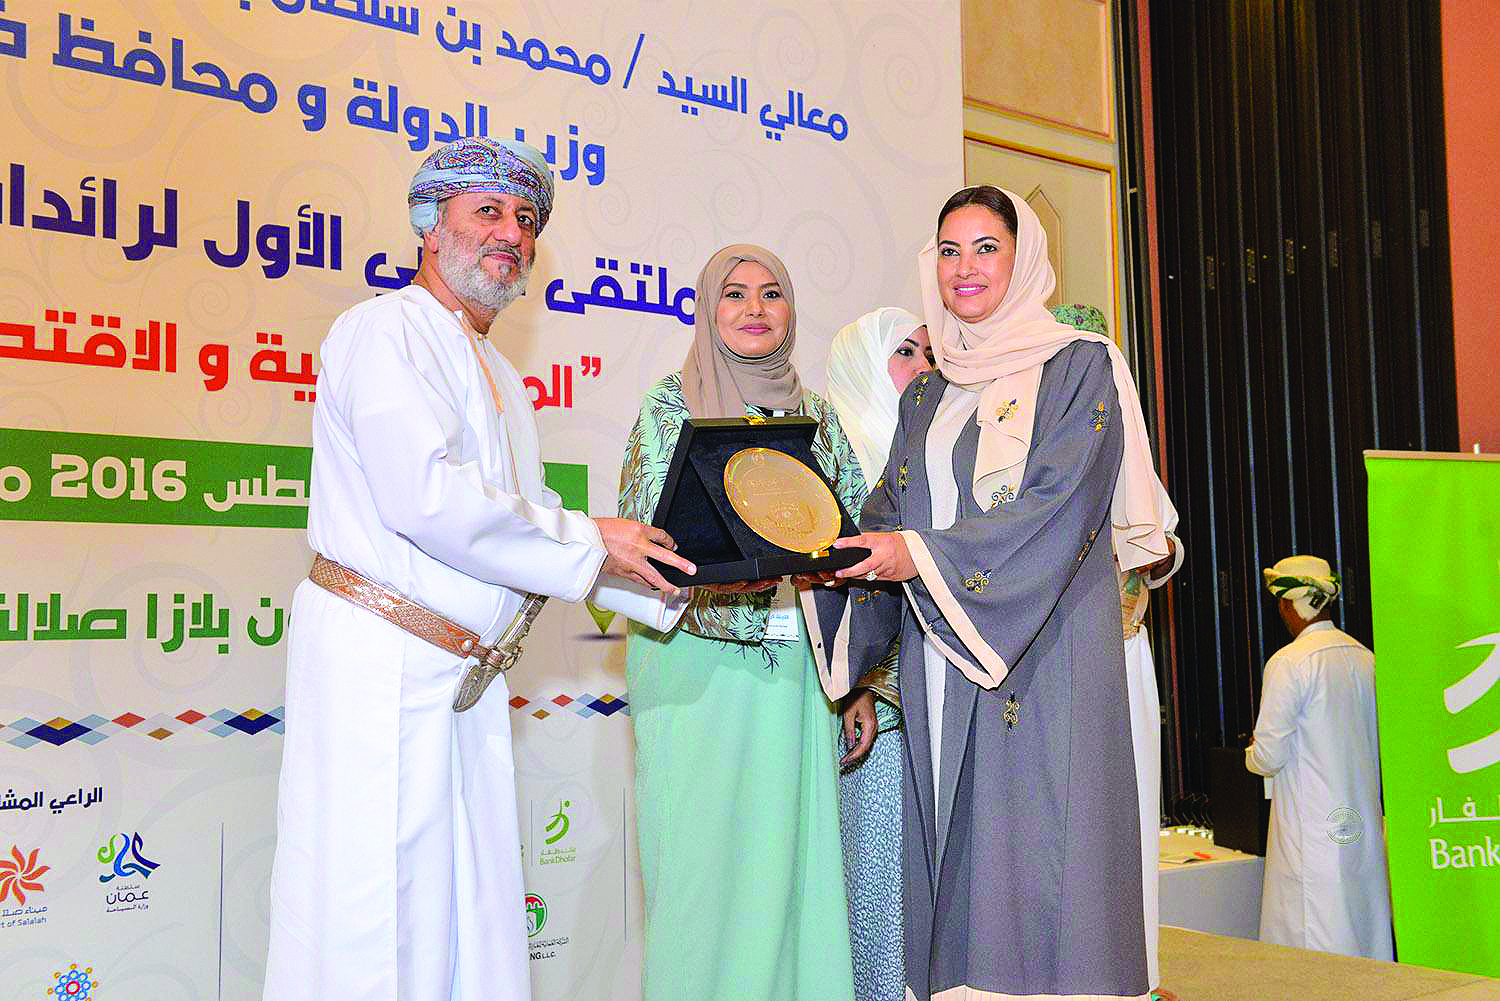 Forum aims at boosting female role in Oman economy